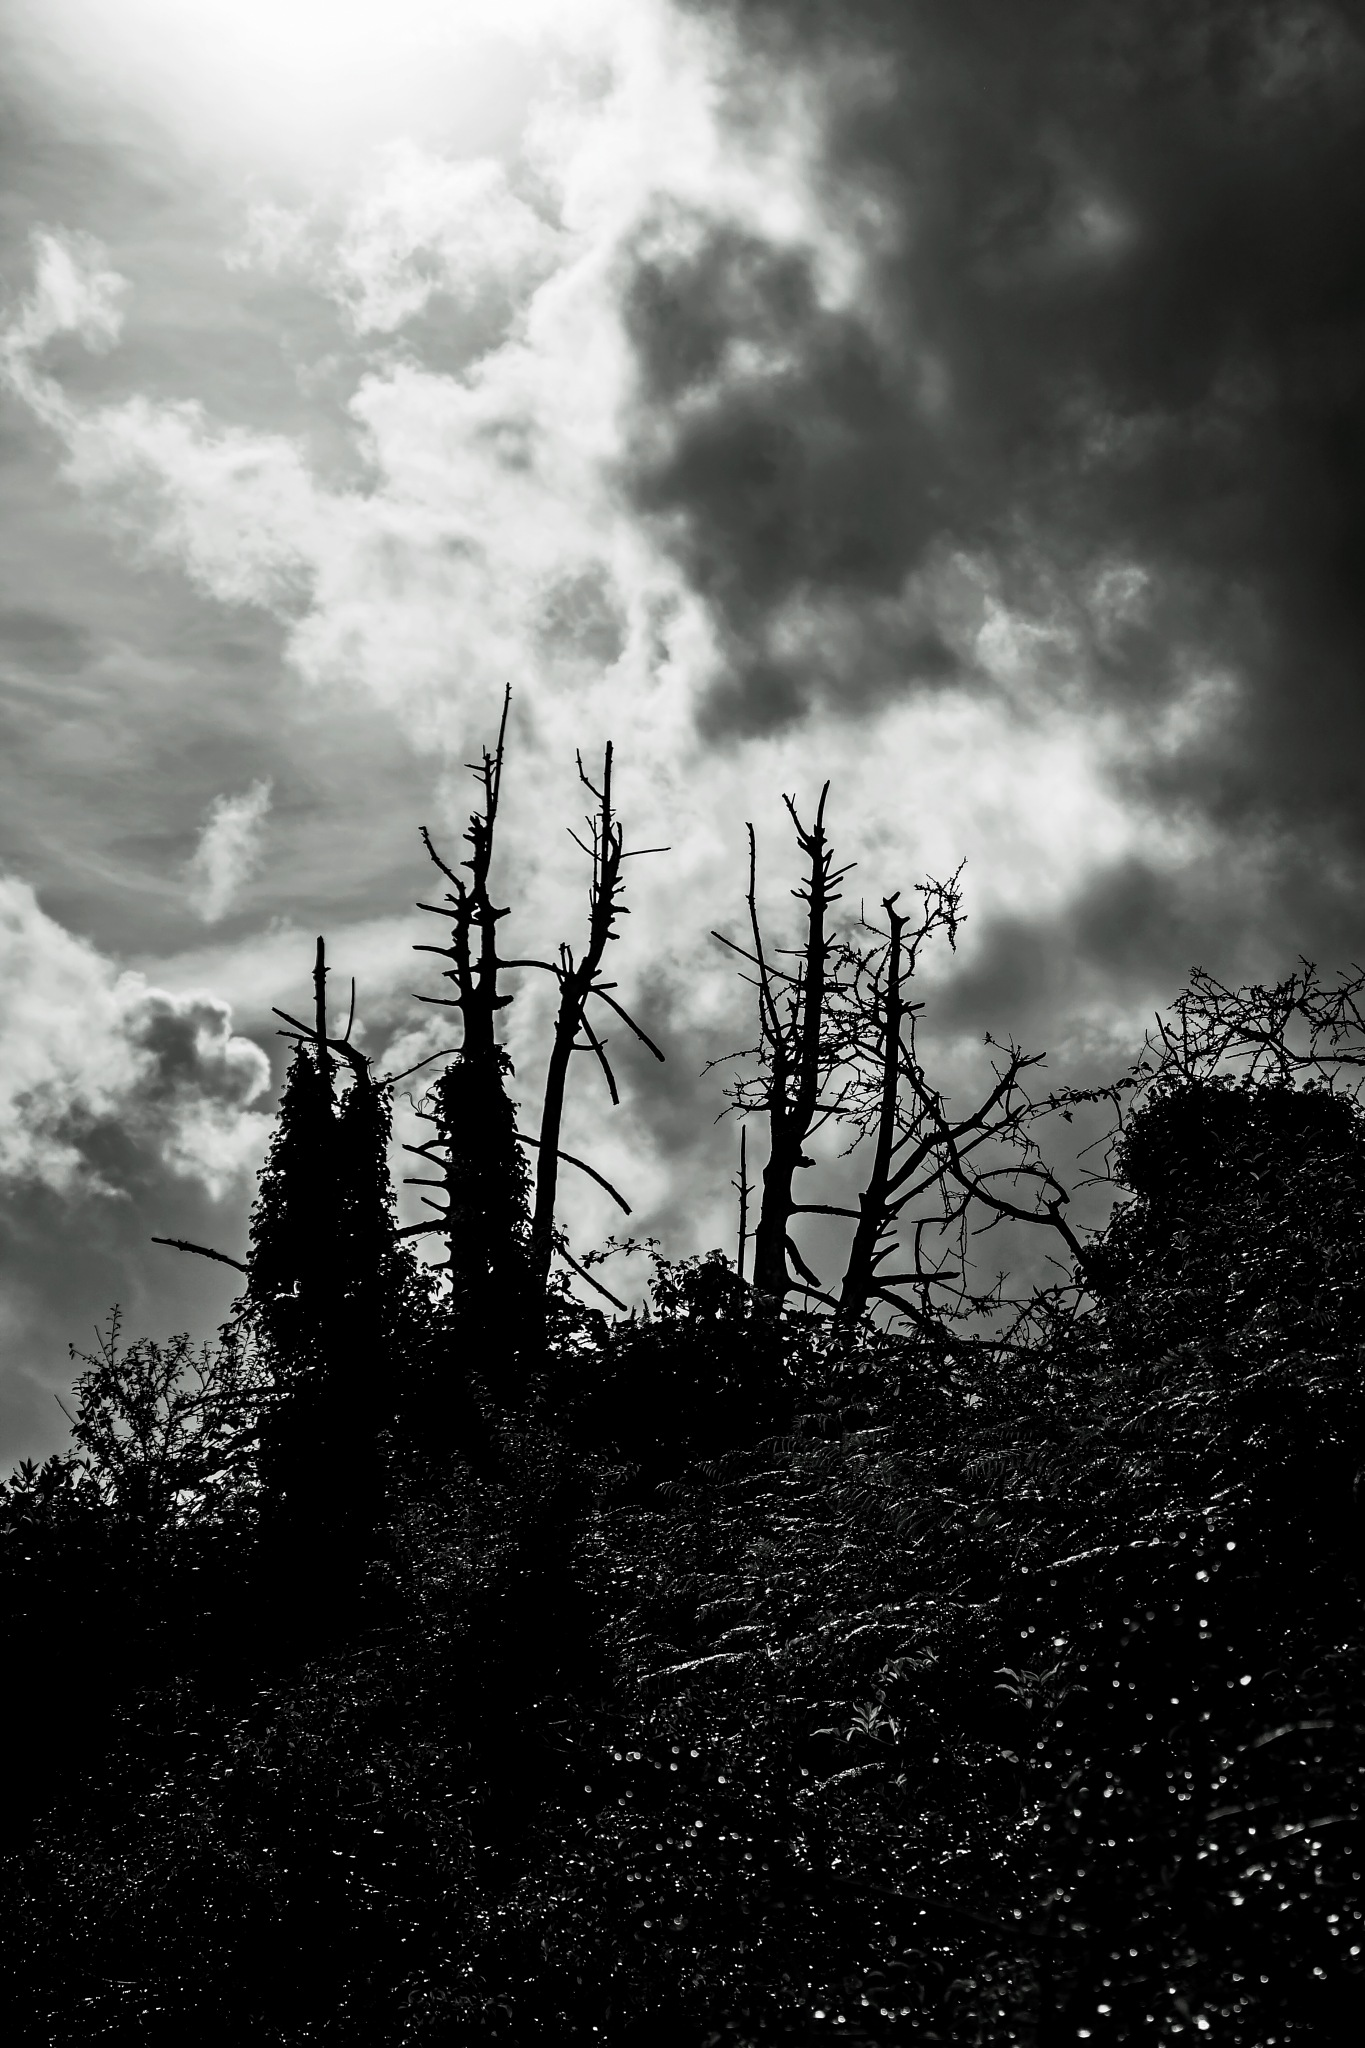 Dead trees by MADOLDIE